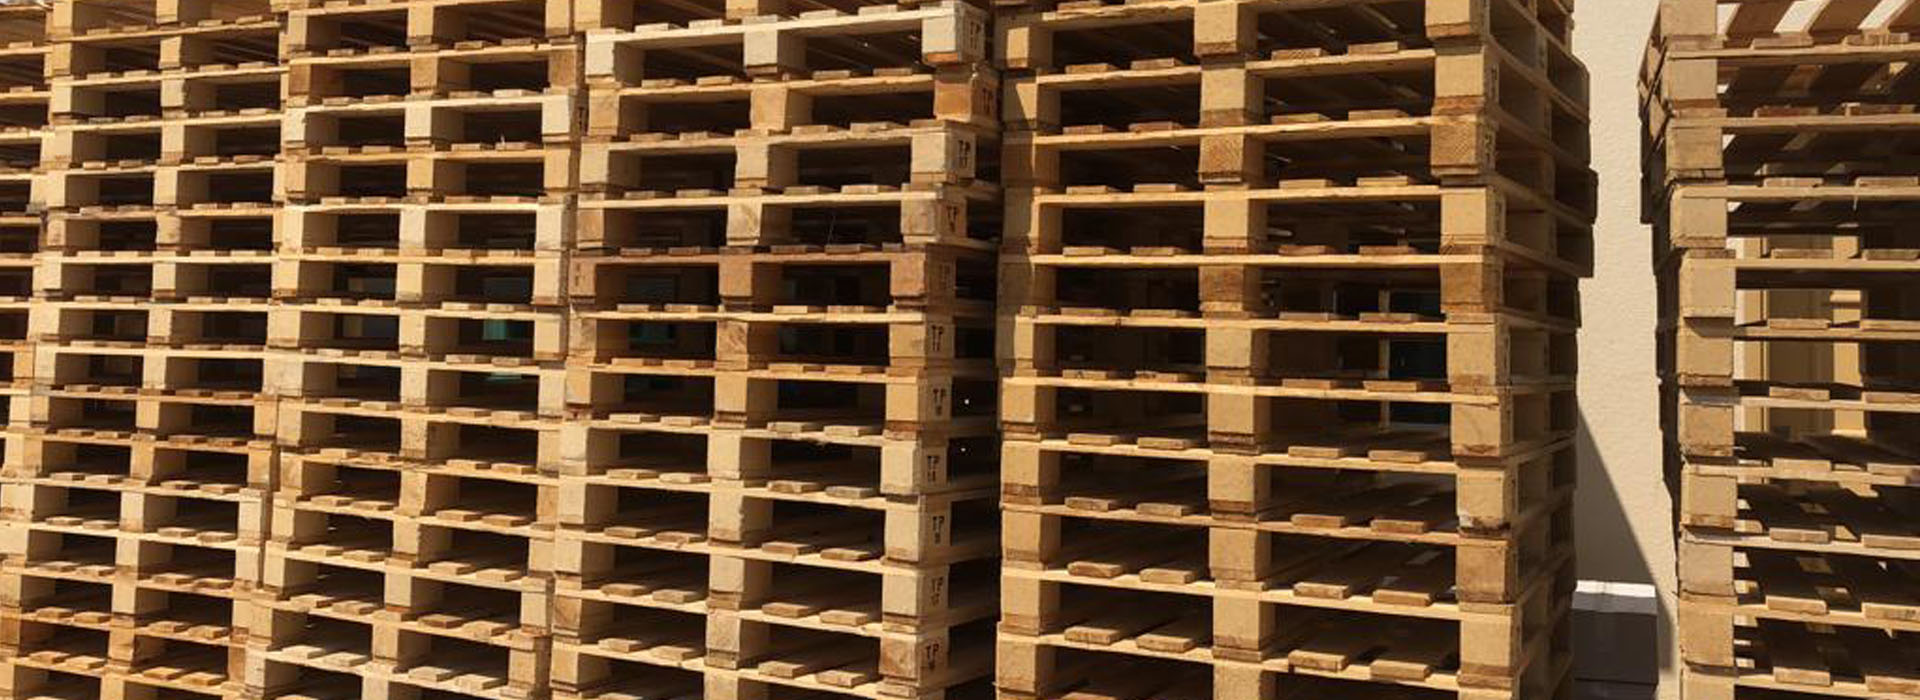 Wooden & Plastic Pallets Manufacturers in UAE   Cartons ...